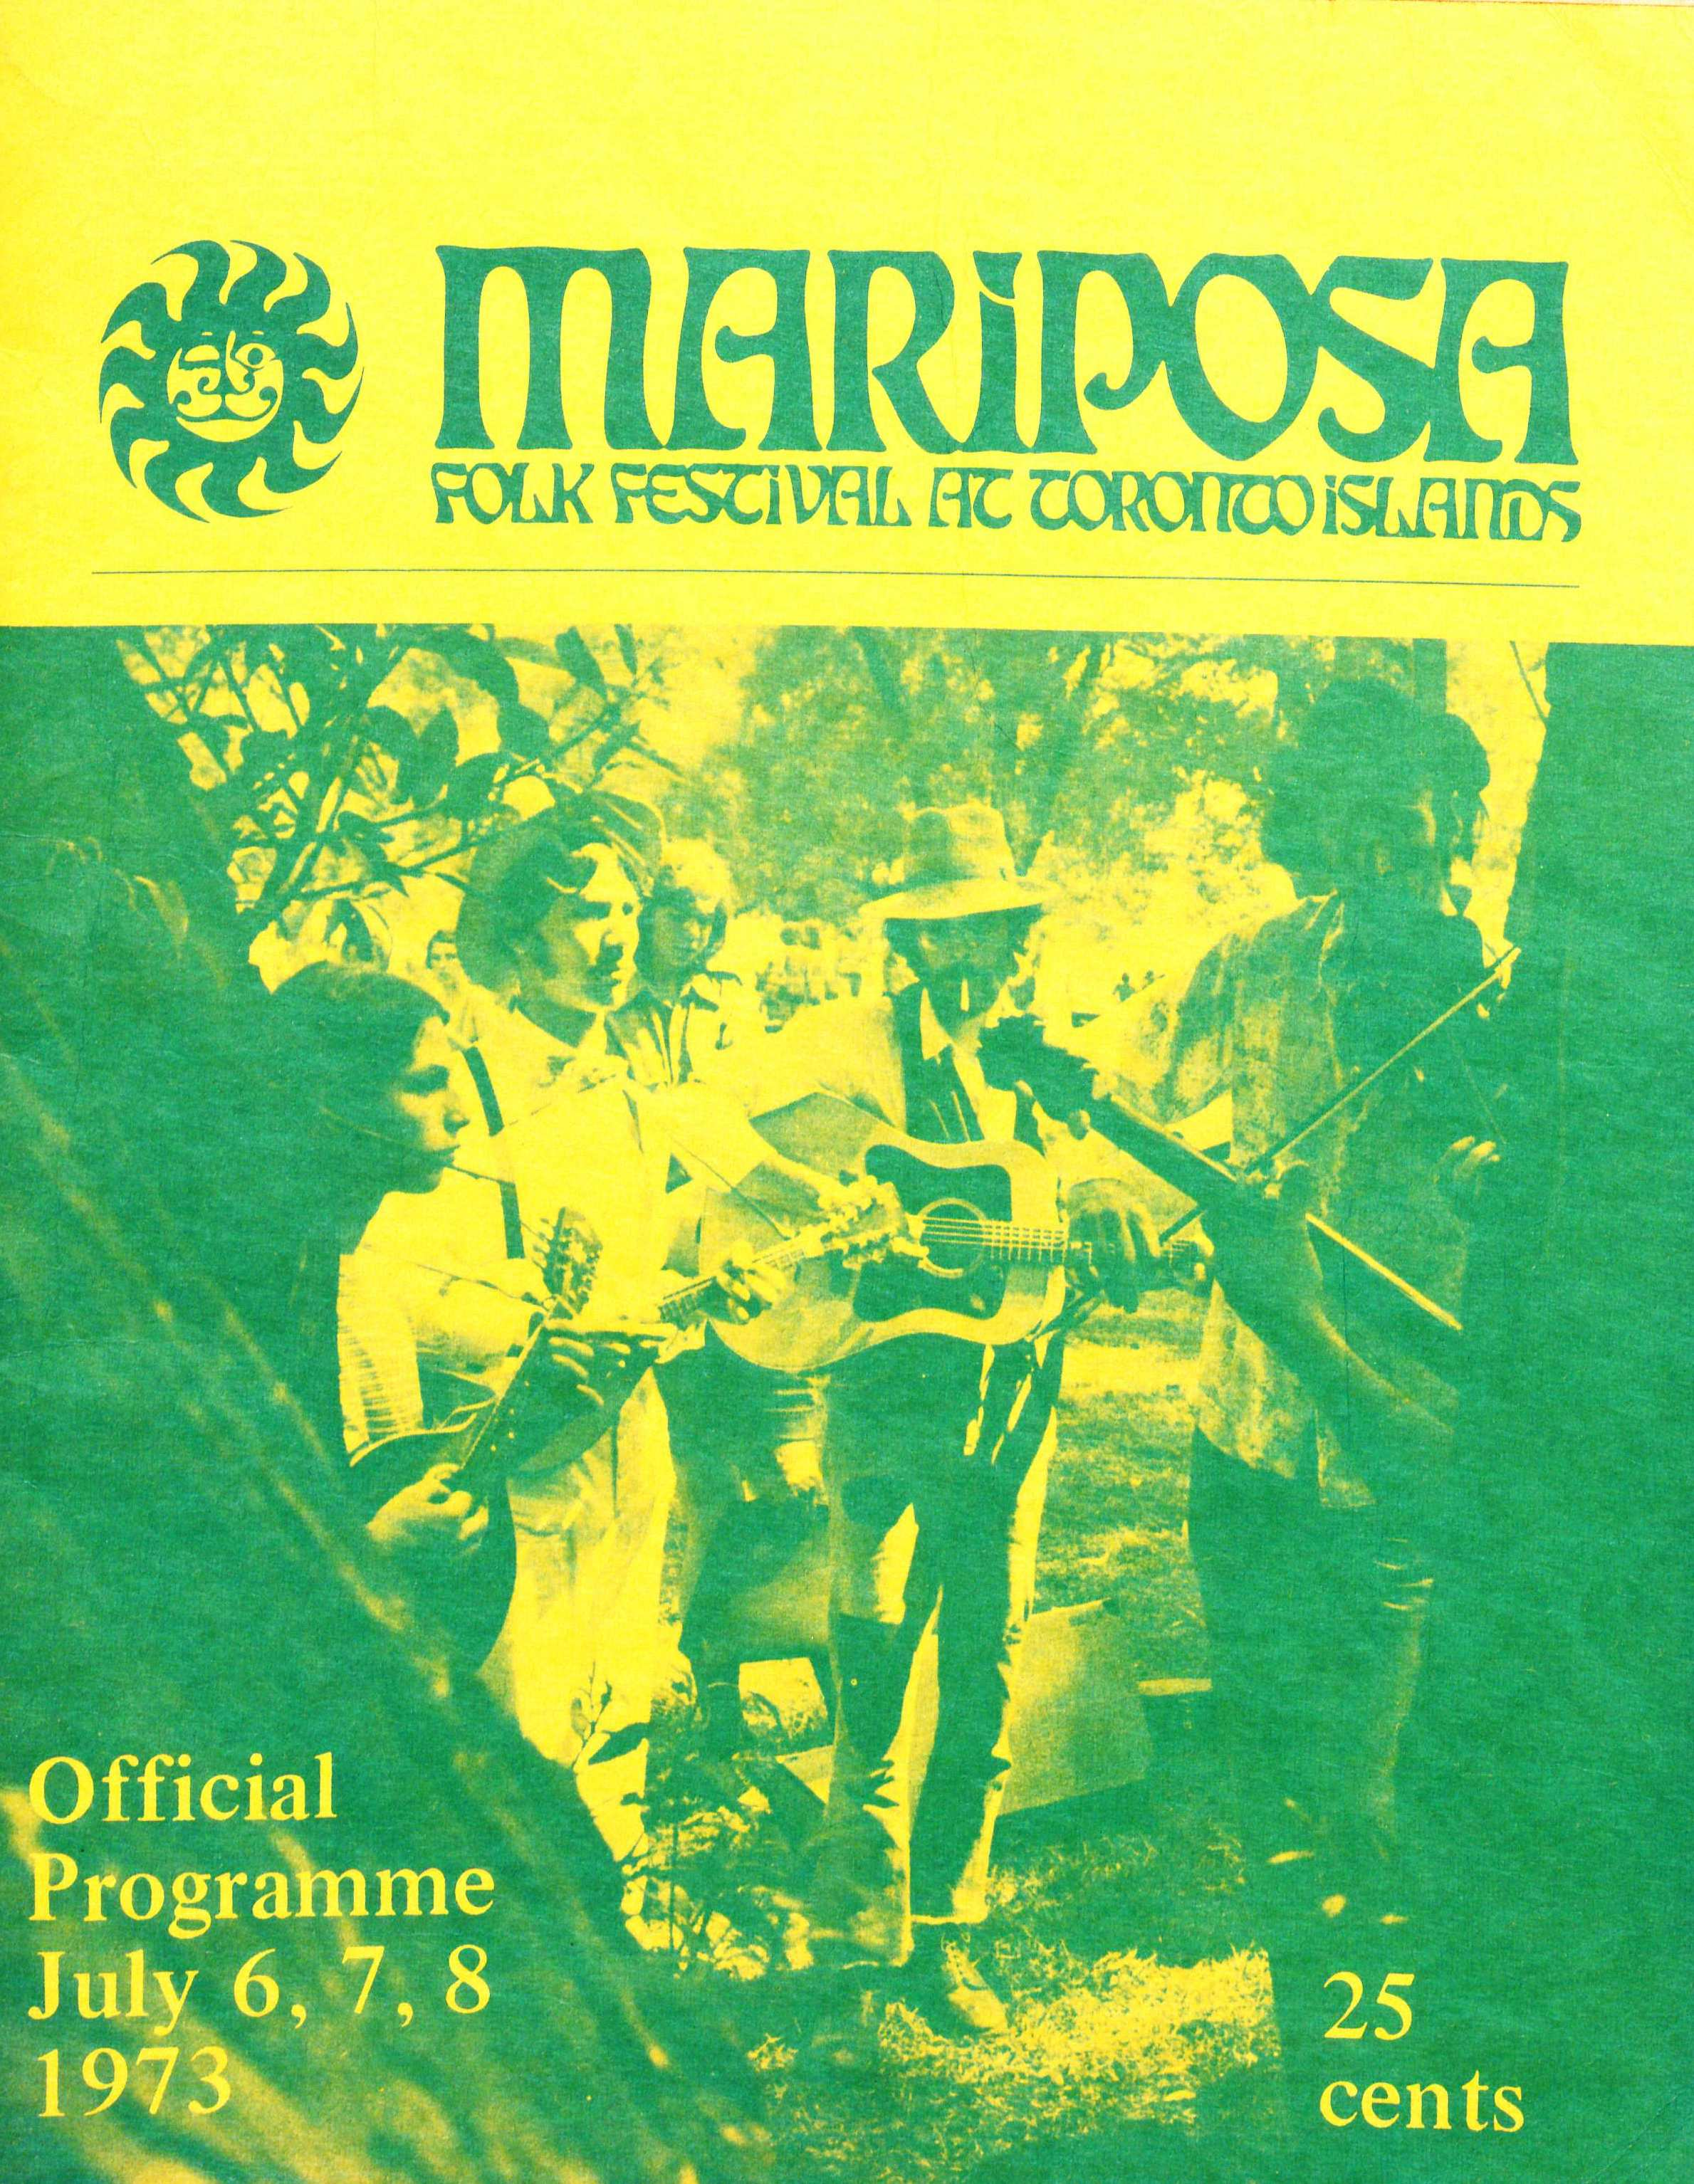 "A green and yellow festival programme featuring a group of four individuals interspersed among trees facing each other and playing instruments. At the top left is a sun illustration accompanied by the words ""Mariposa Folk Festival at the Toronto Islands"". On the bottom left it reads: ""Official Programme, July 6,7,8, 1973."""